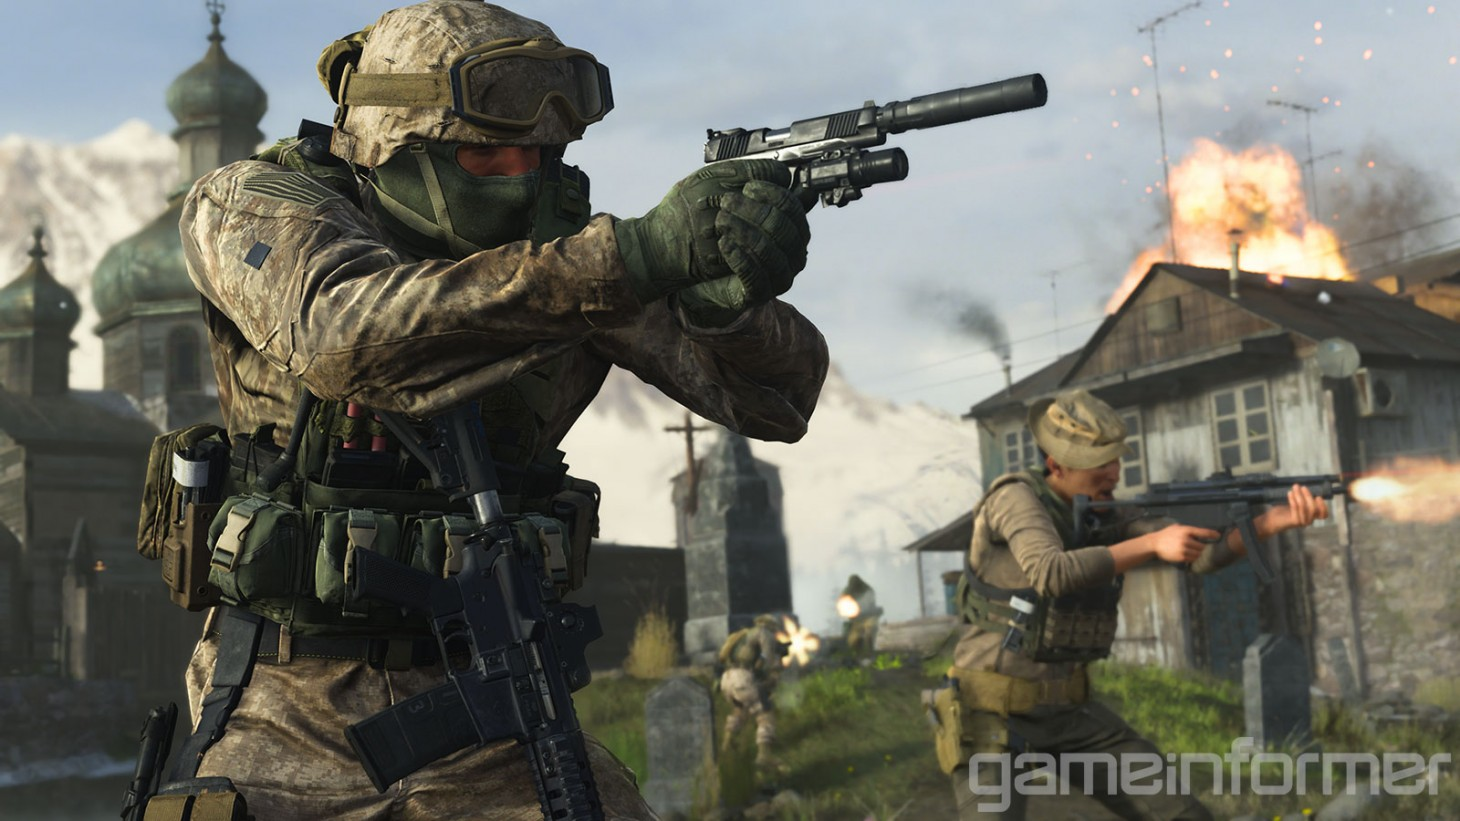 Call Of Duty Modern Warfare Unable To Access Online Gamewatcher Warzone is an online game, meaning players require an internet connection to play, and activision's servers need to remain stable. call of duty modern warfare unable to